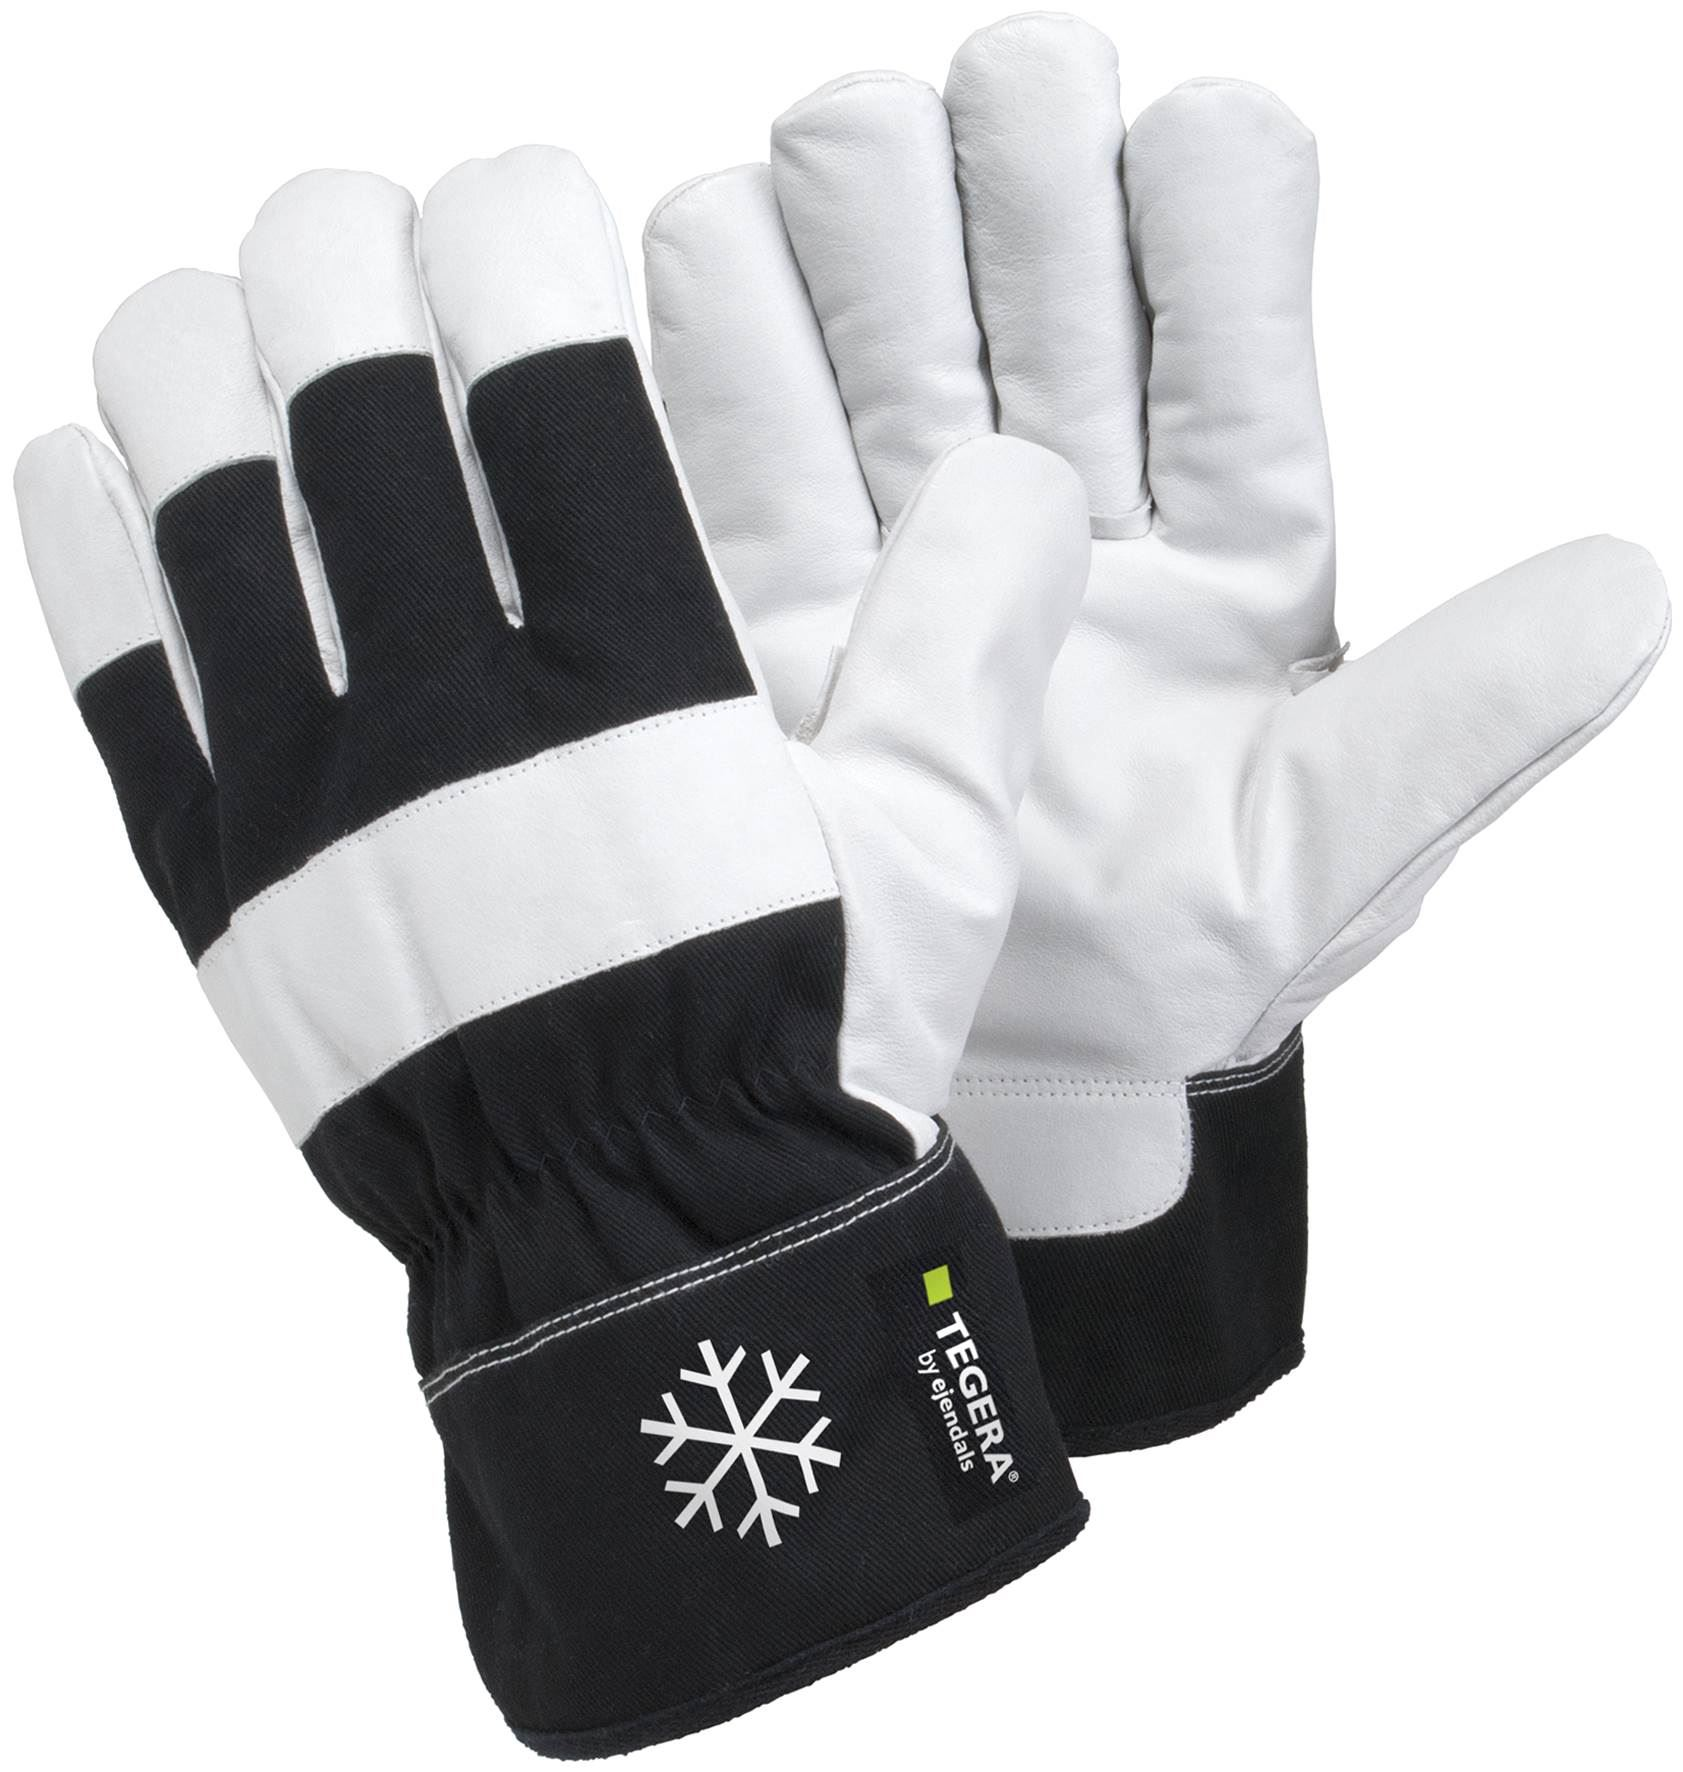 Leather work gloves ebay - Tegera 377 Black White Heavy Duty Warm Winter